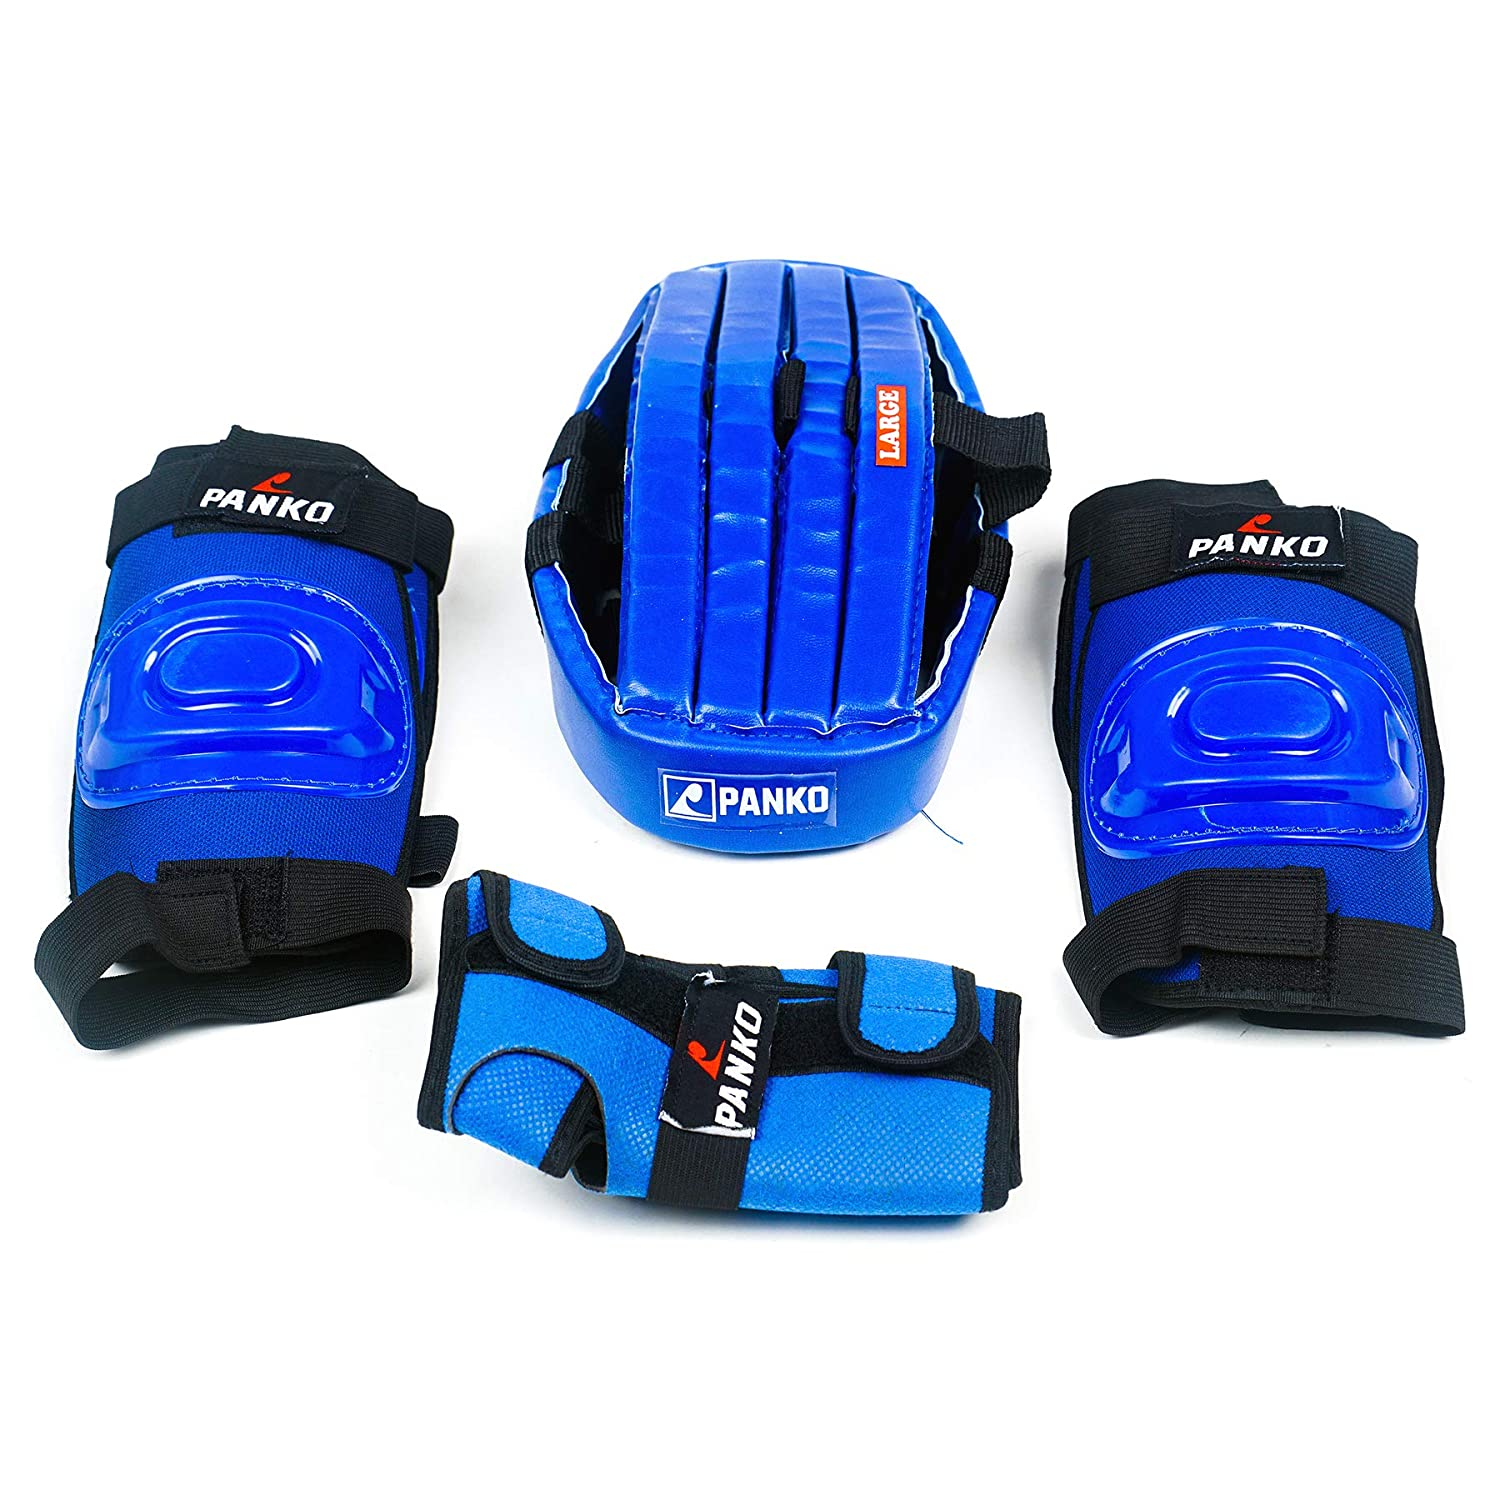 Skating Protective Set - Best Quality